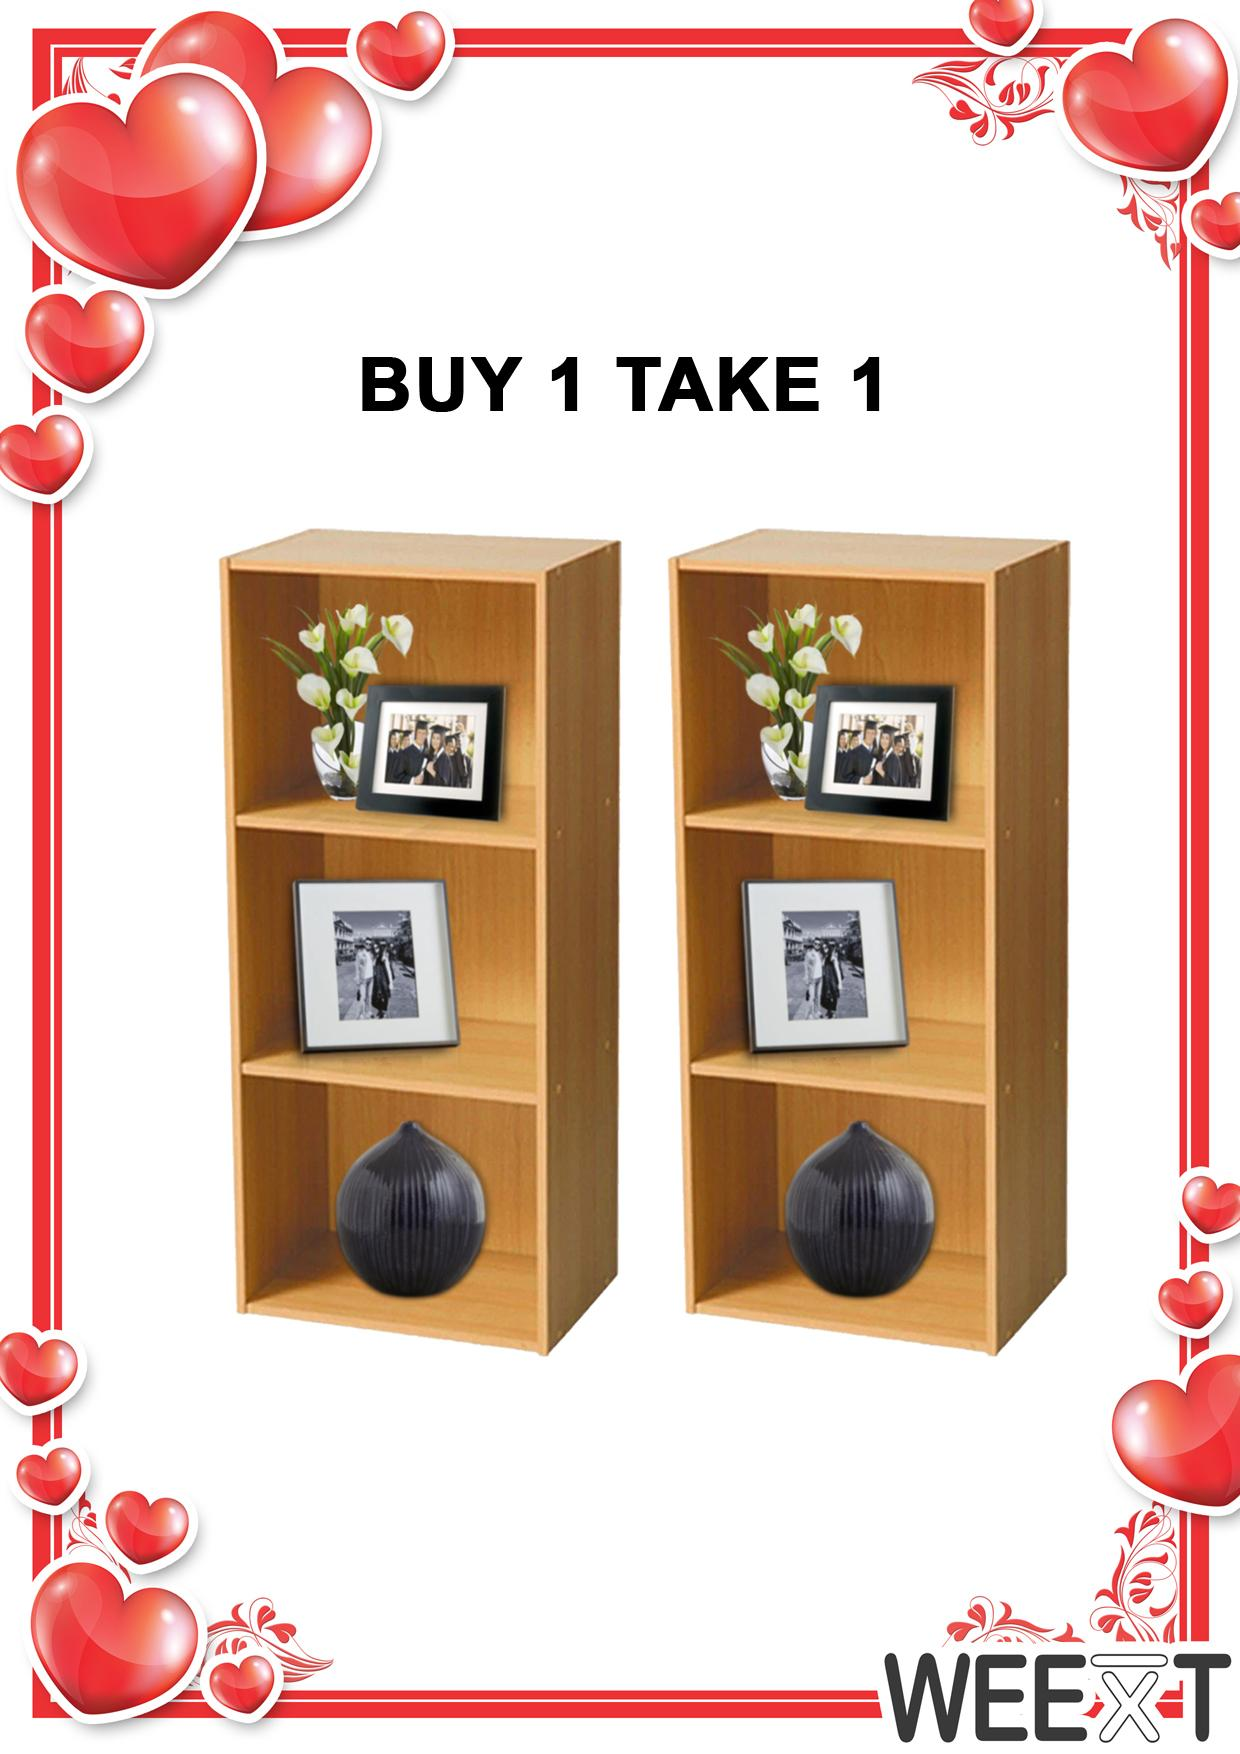 Weext buy 1 take 1 wooden bookcase 3 layer shelf